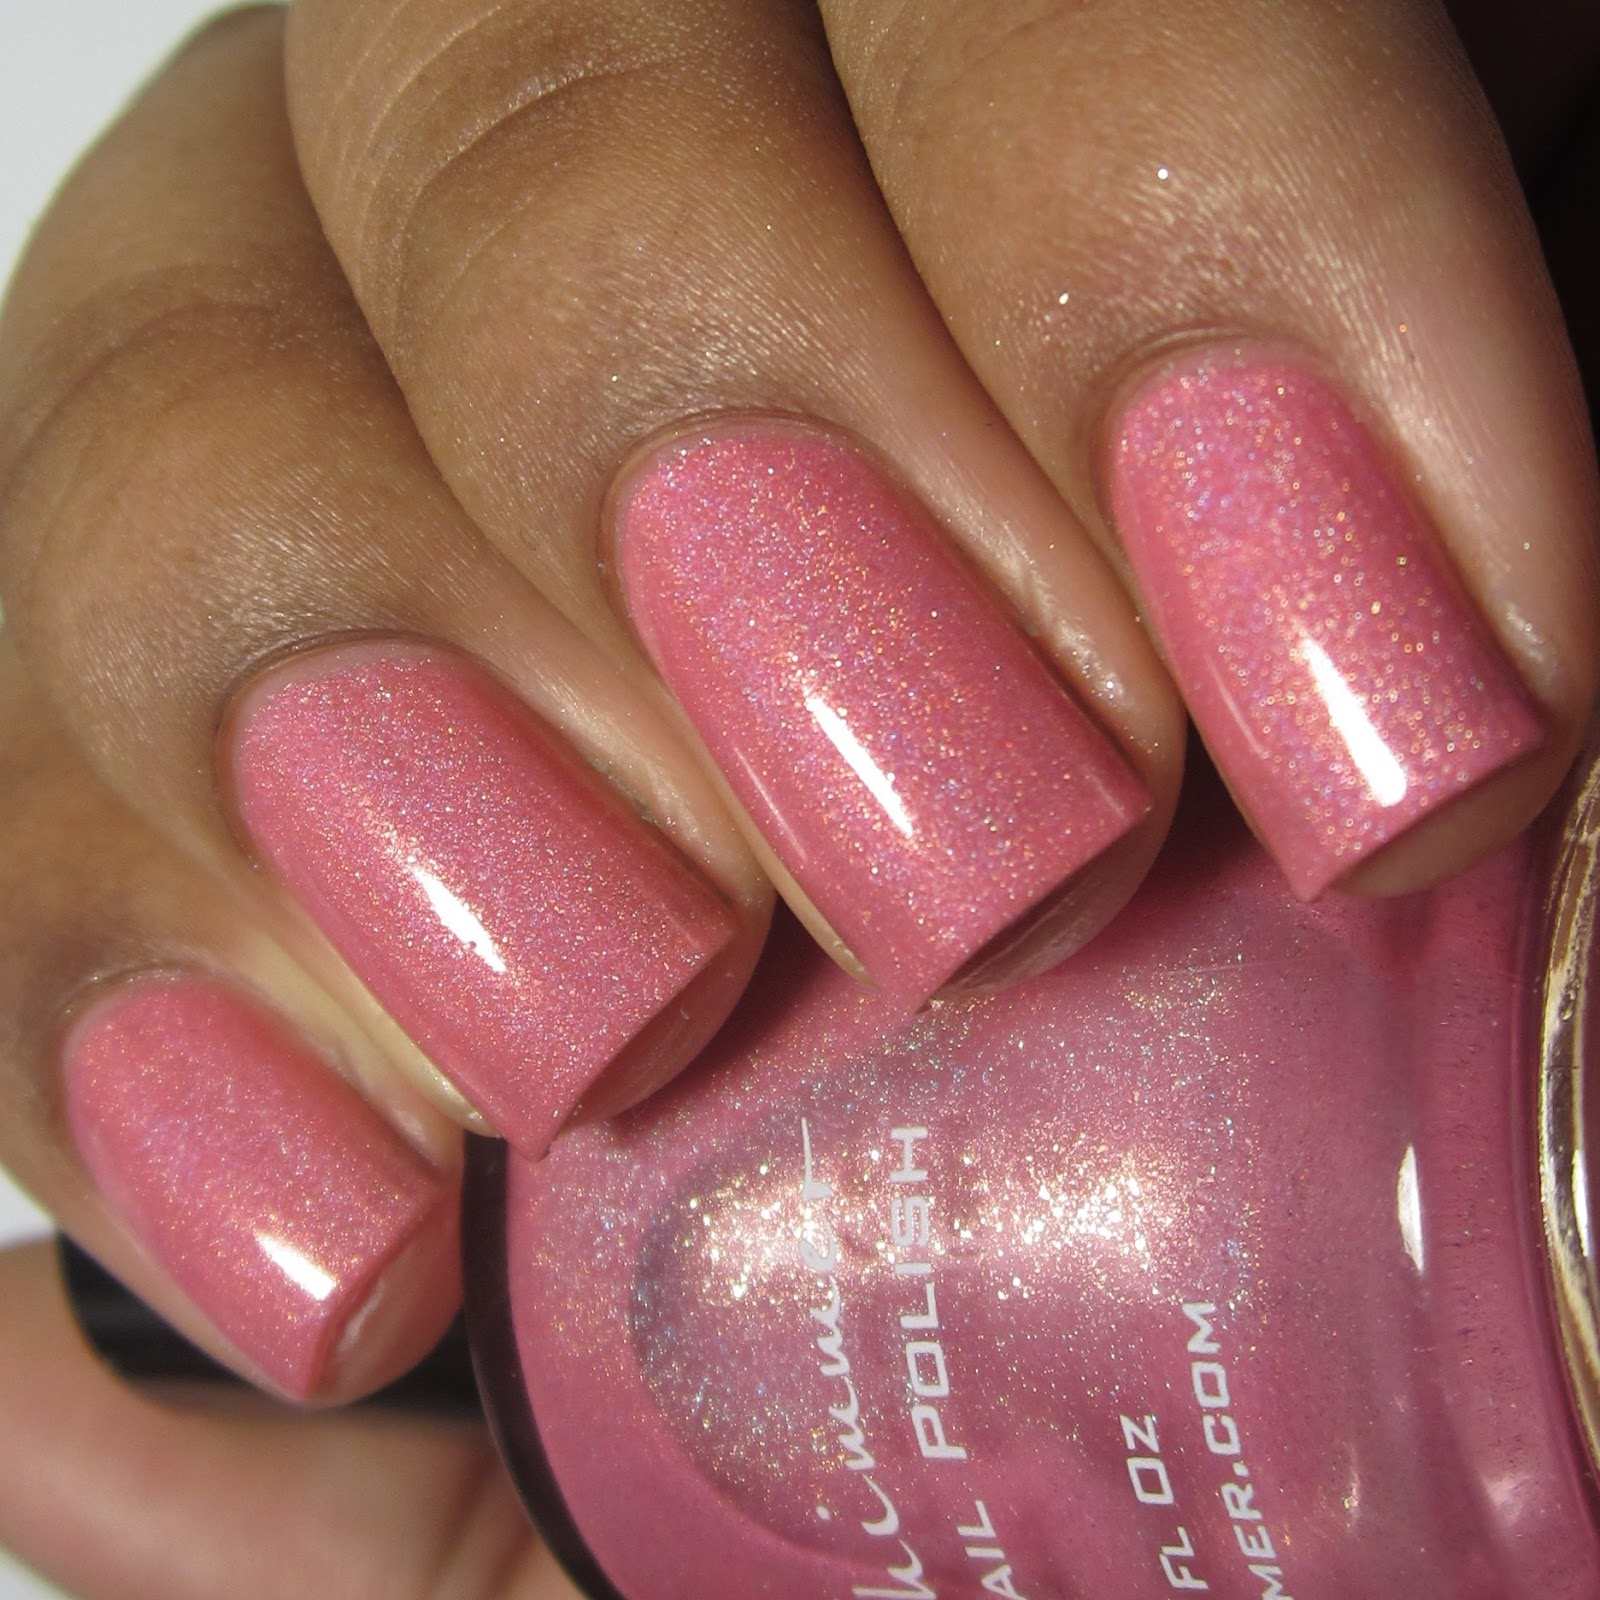 KBShimmer Blush Money Spring 2015 pink holo